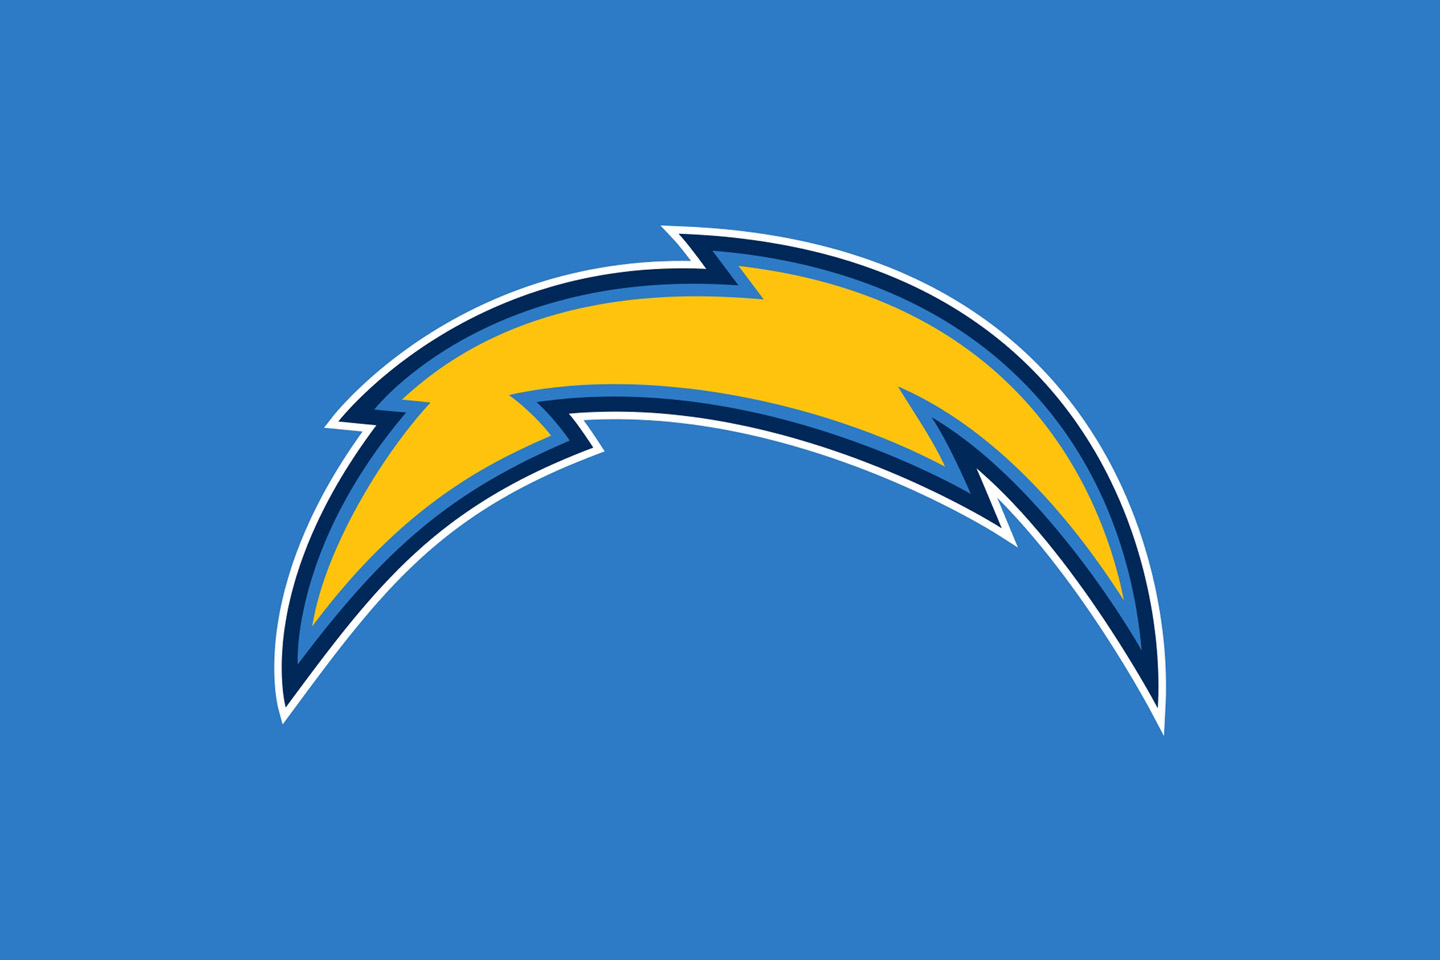 San Diego Chargers Light Bolt4 1440 215 960 Digital Citizen